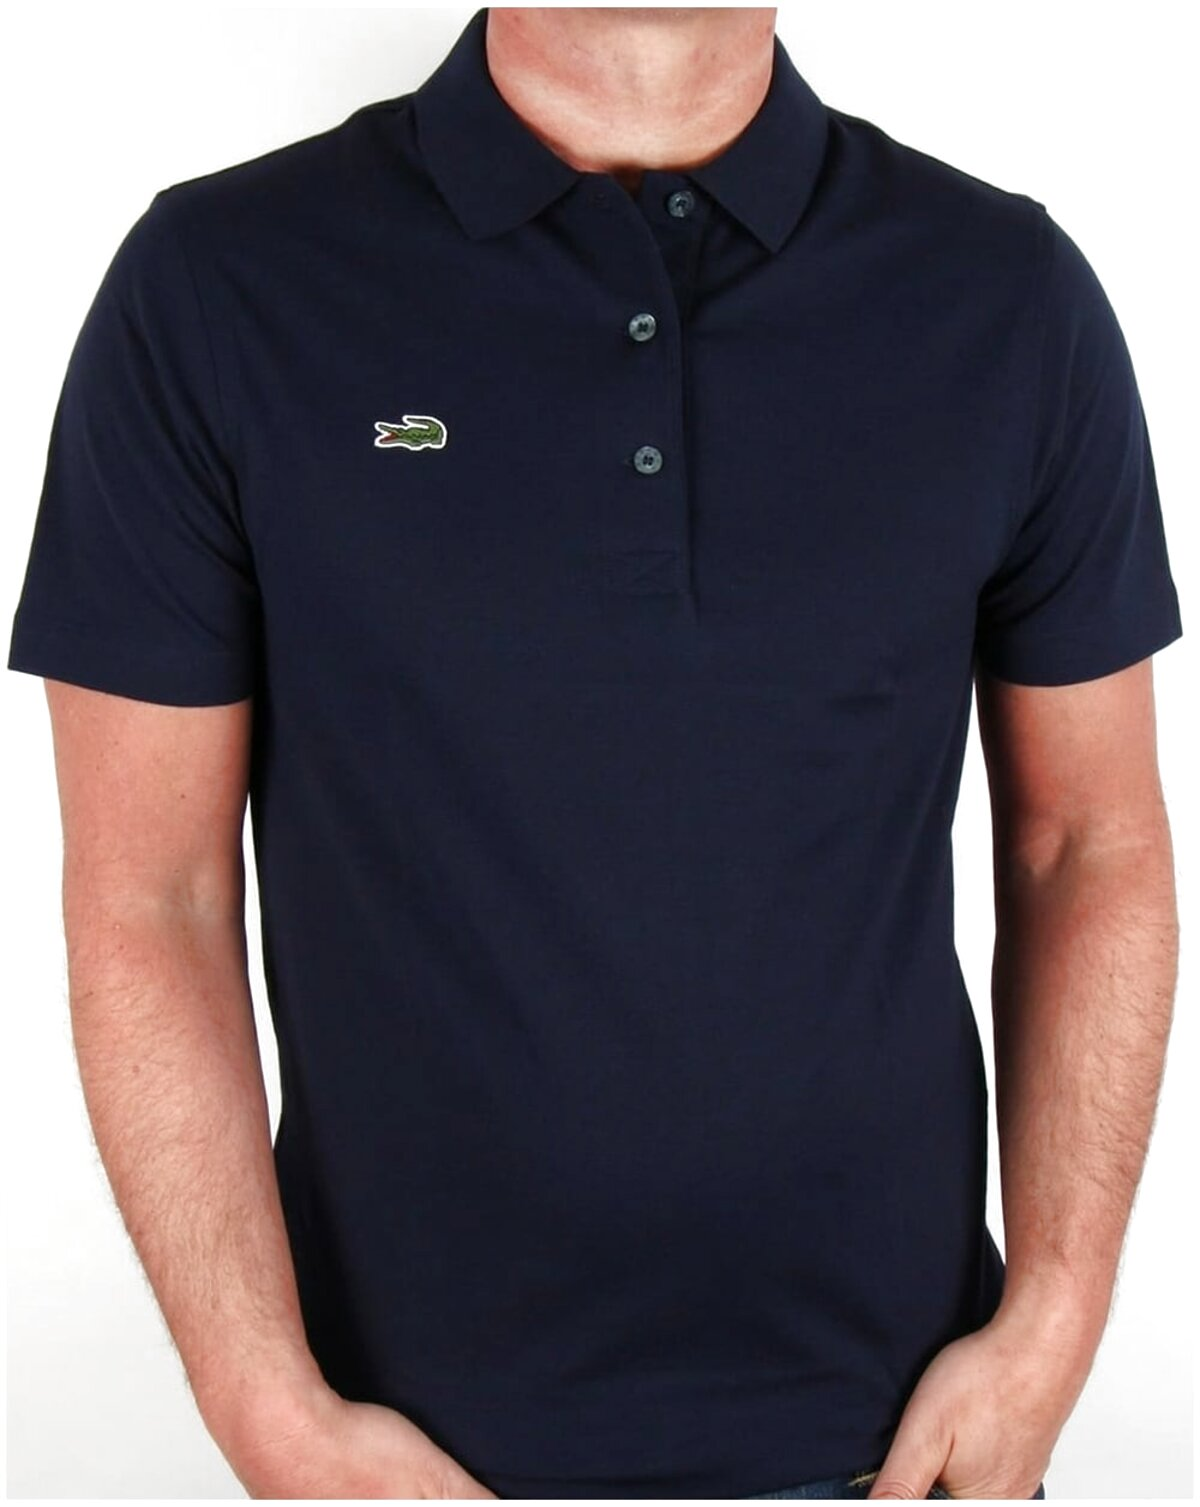 lacoste polo shirt for sale